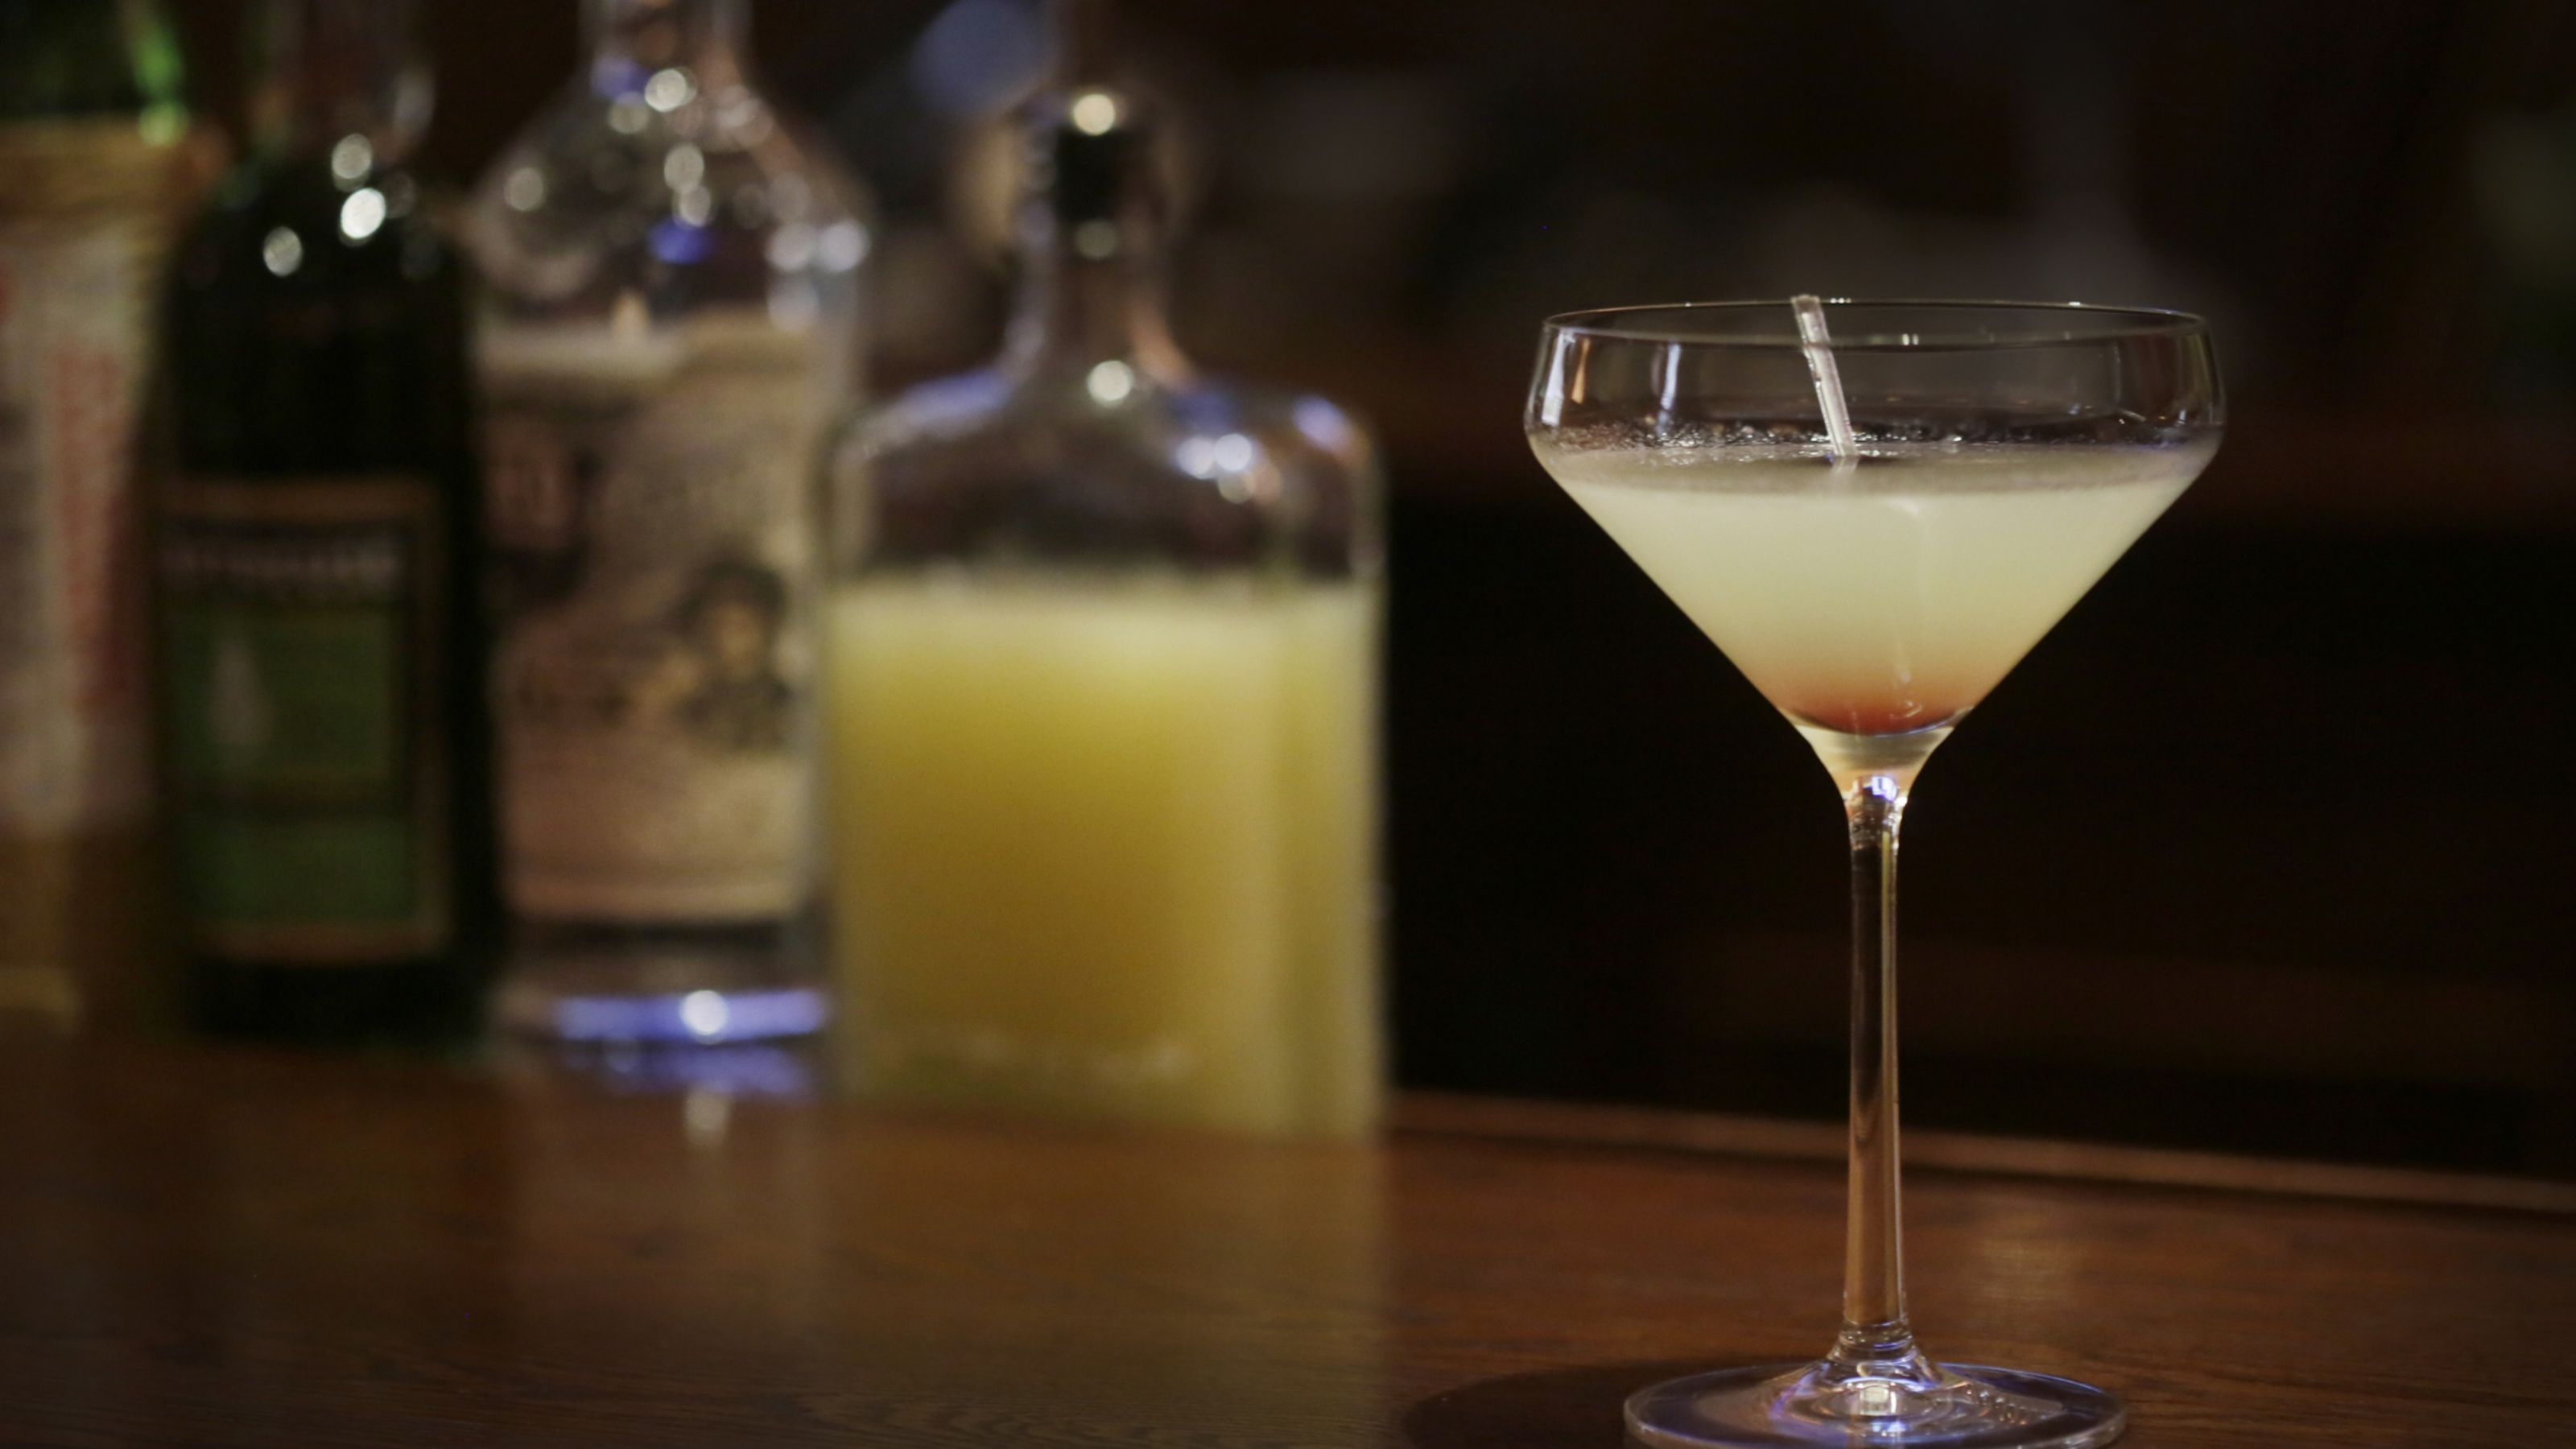 The Last Word is a drink with a fascinating Detroit story